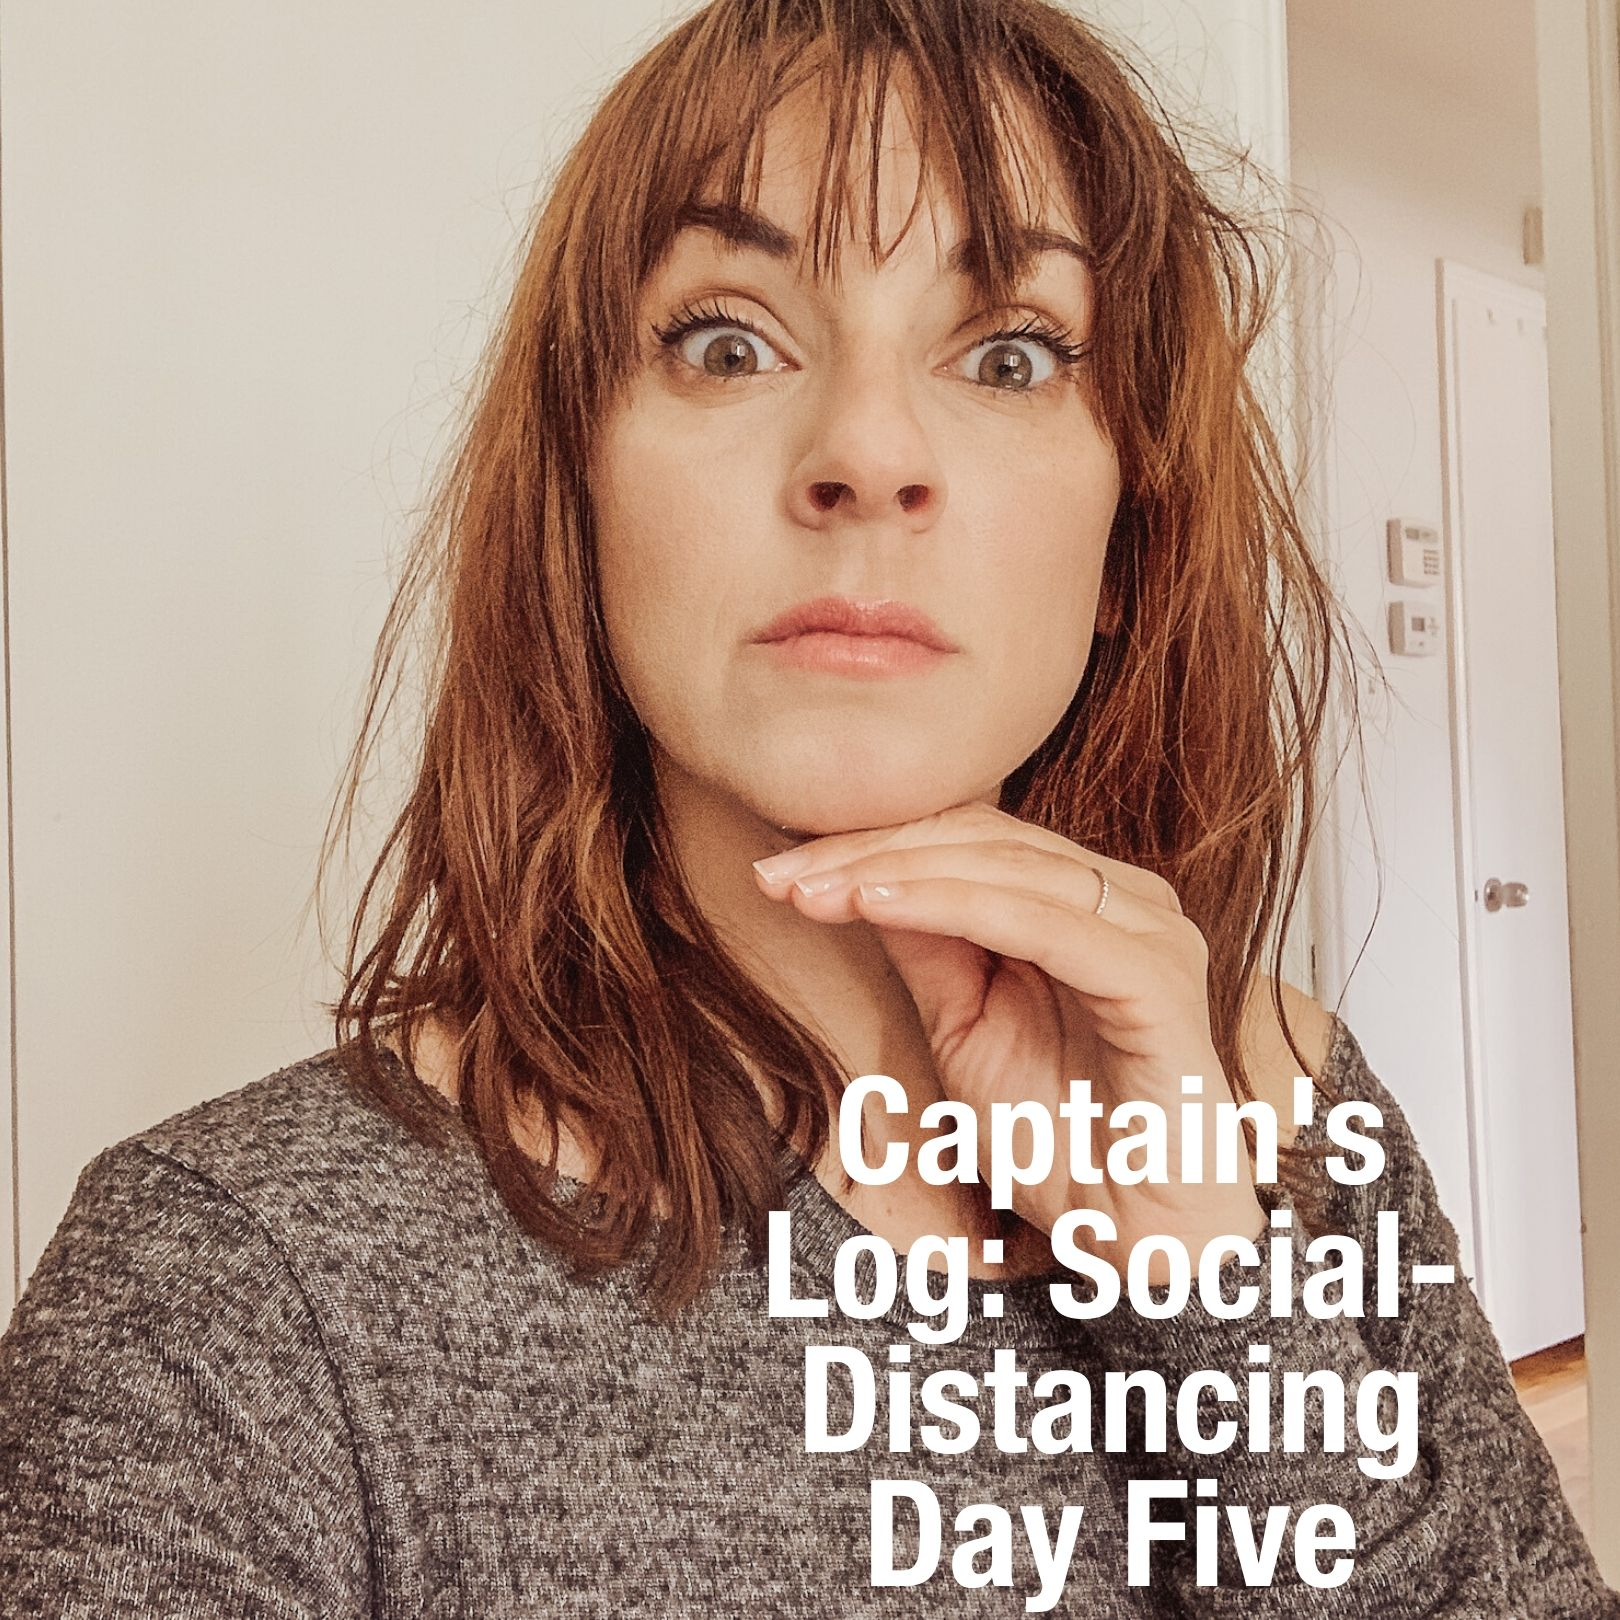 Captain's Log: Covid 19 Social-Distancing Day Five